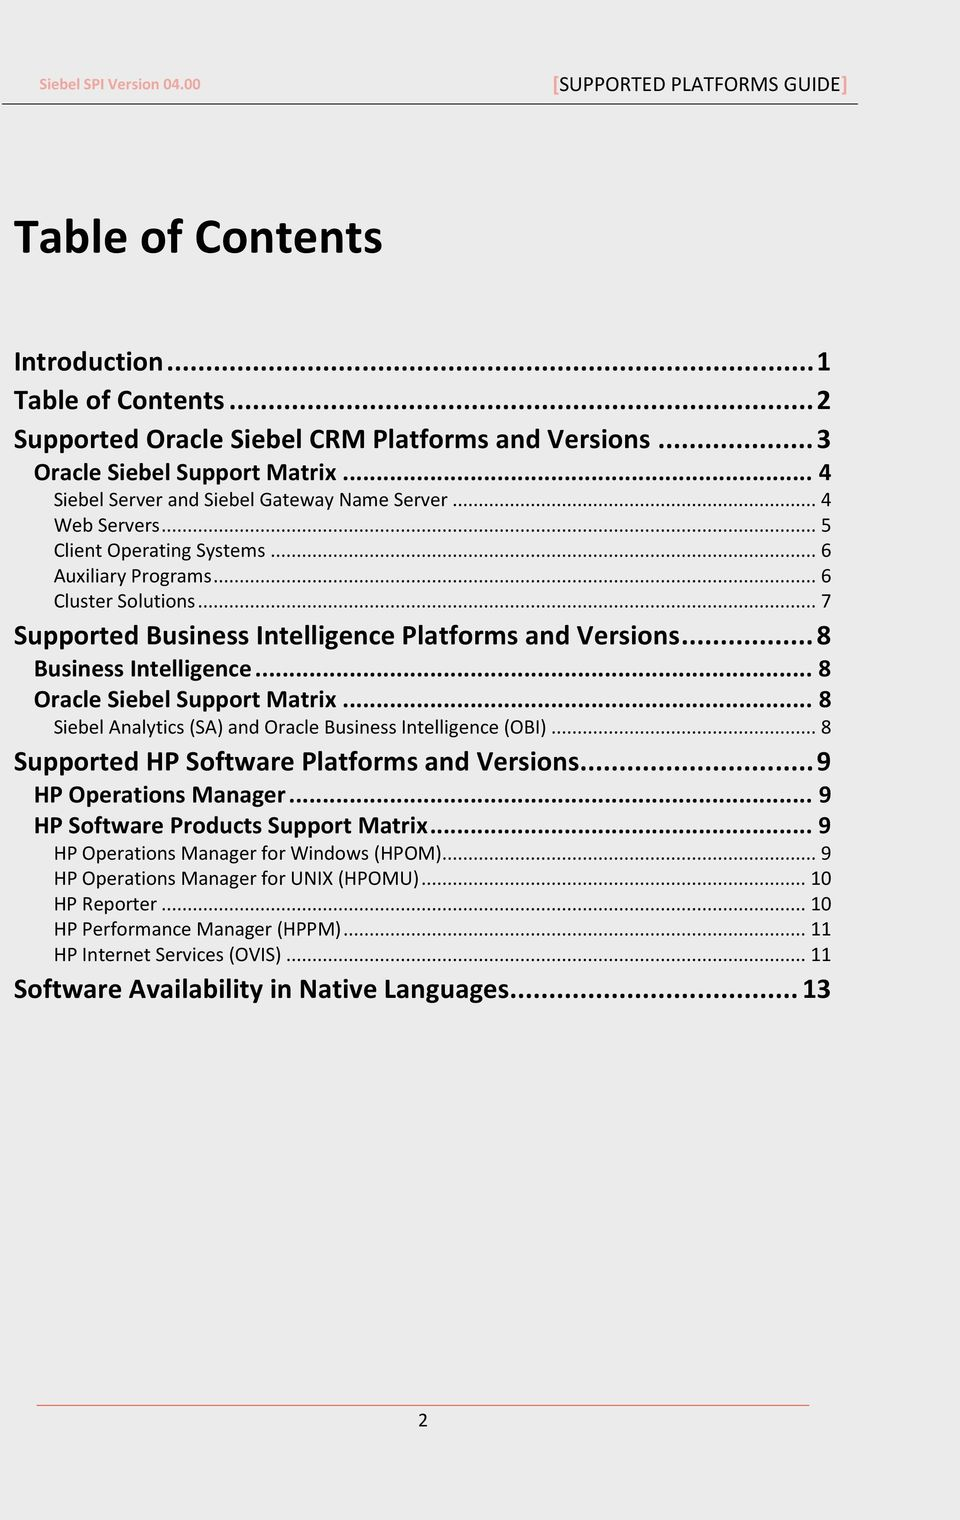 .. 8 Oracle Siebel Support Matrix... 8 Siebel Analytics (SA) and Oracle Business Intelligence (OBI)... 8 Supported HP Software Platforms and Versions... 9 HP Operations Manager.